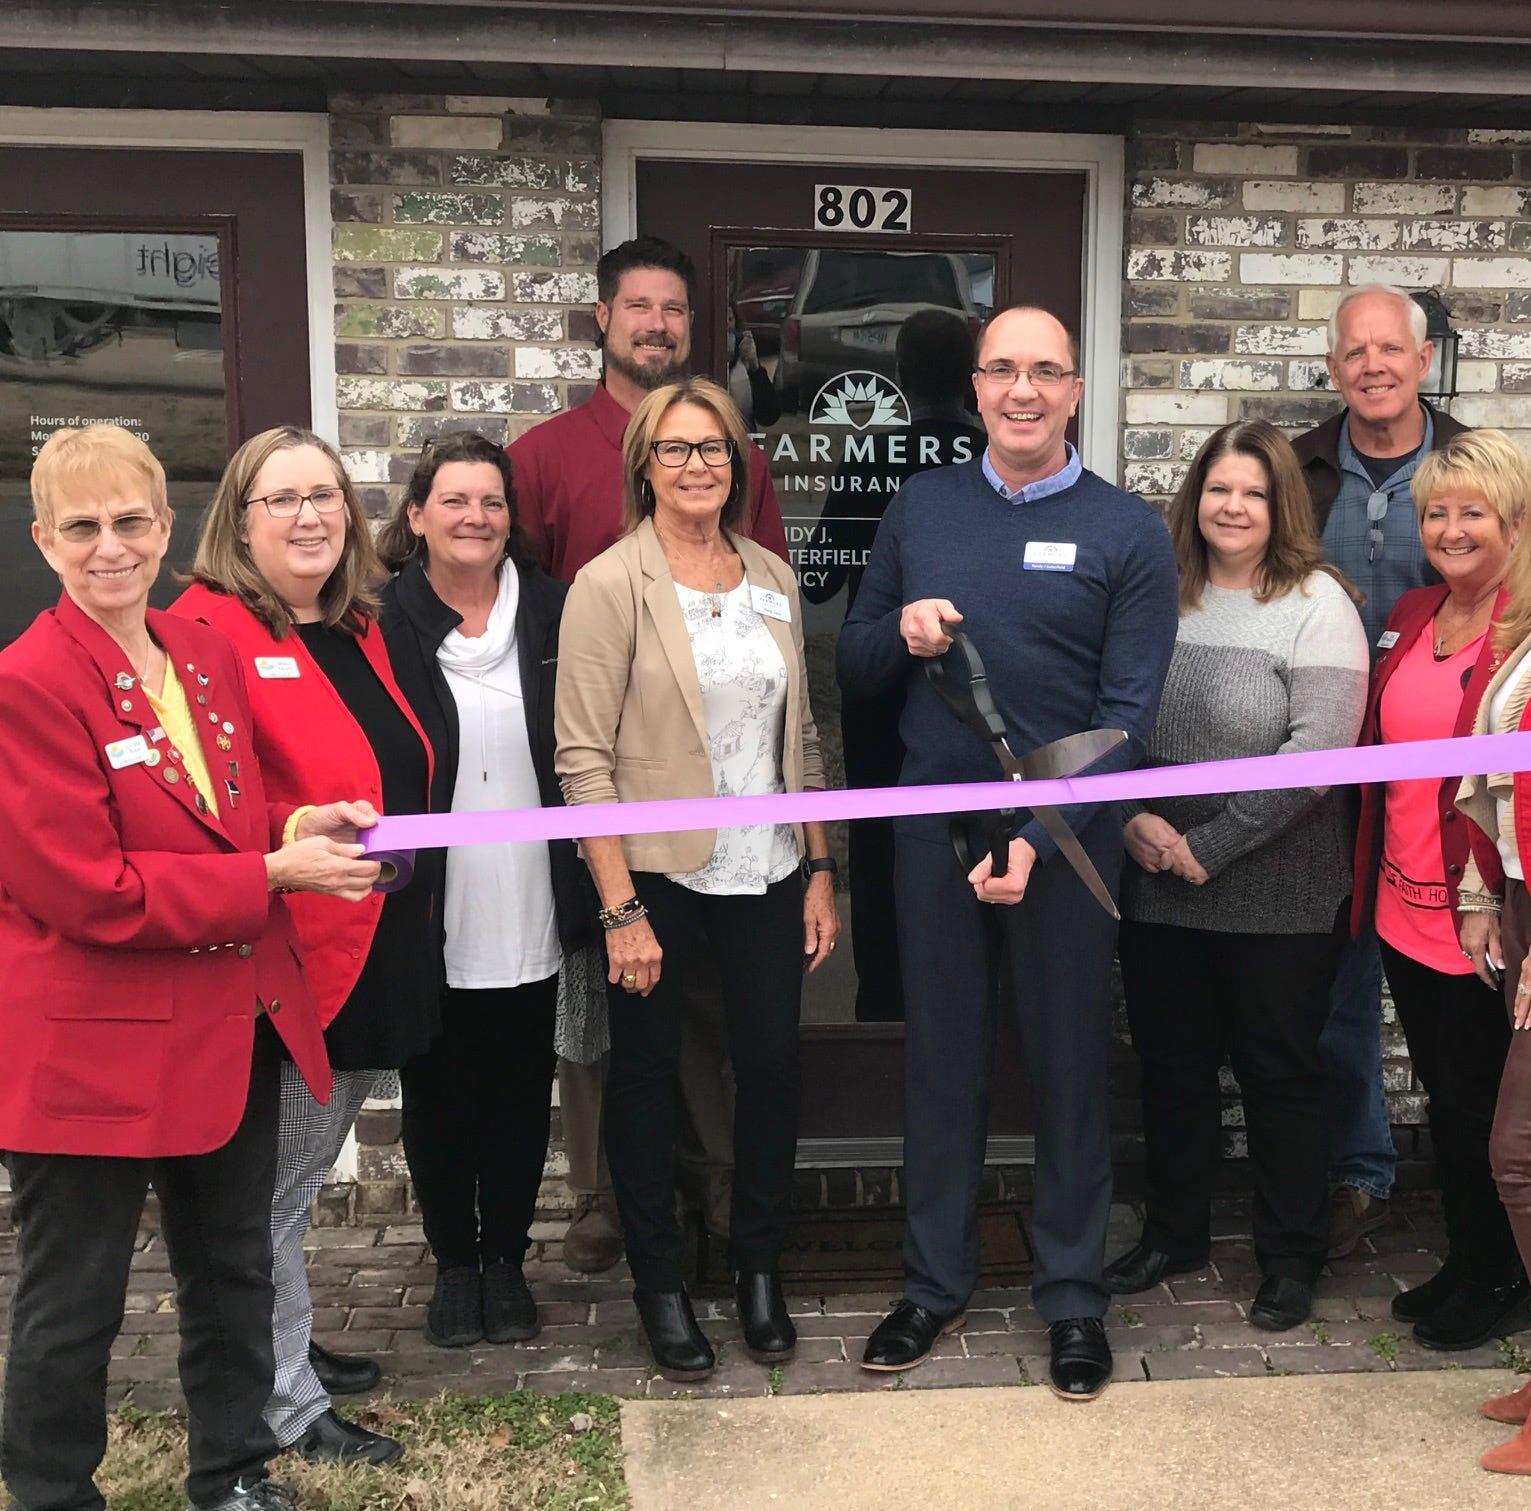 Chamber cuts ribbon for Farmers Insurance